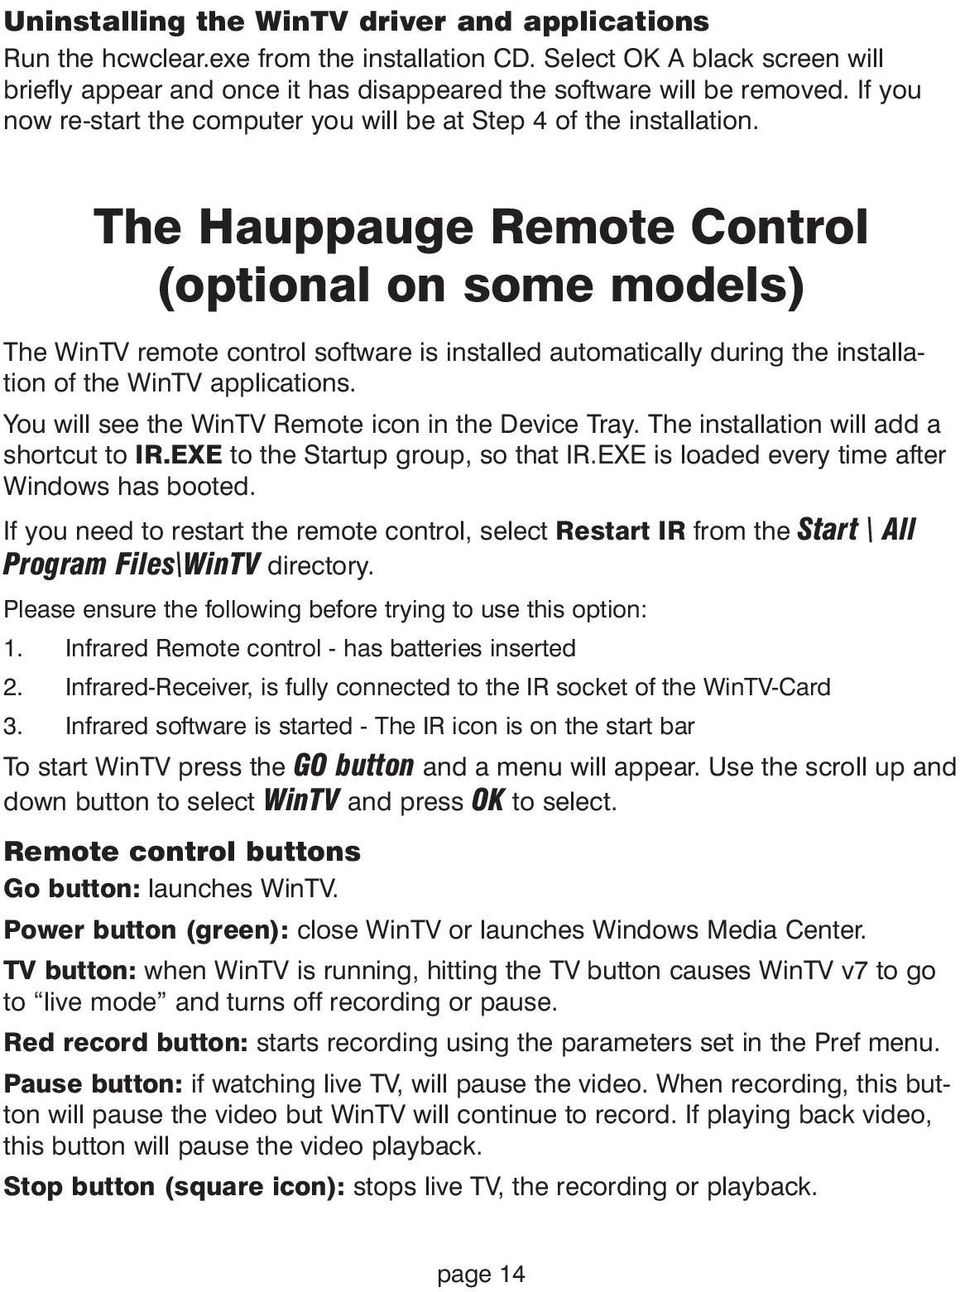 The Hauppauge Remote Control (optional on some models) The WinTV remote control software is installed automatically during the installation of the WinTV applications.